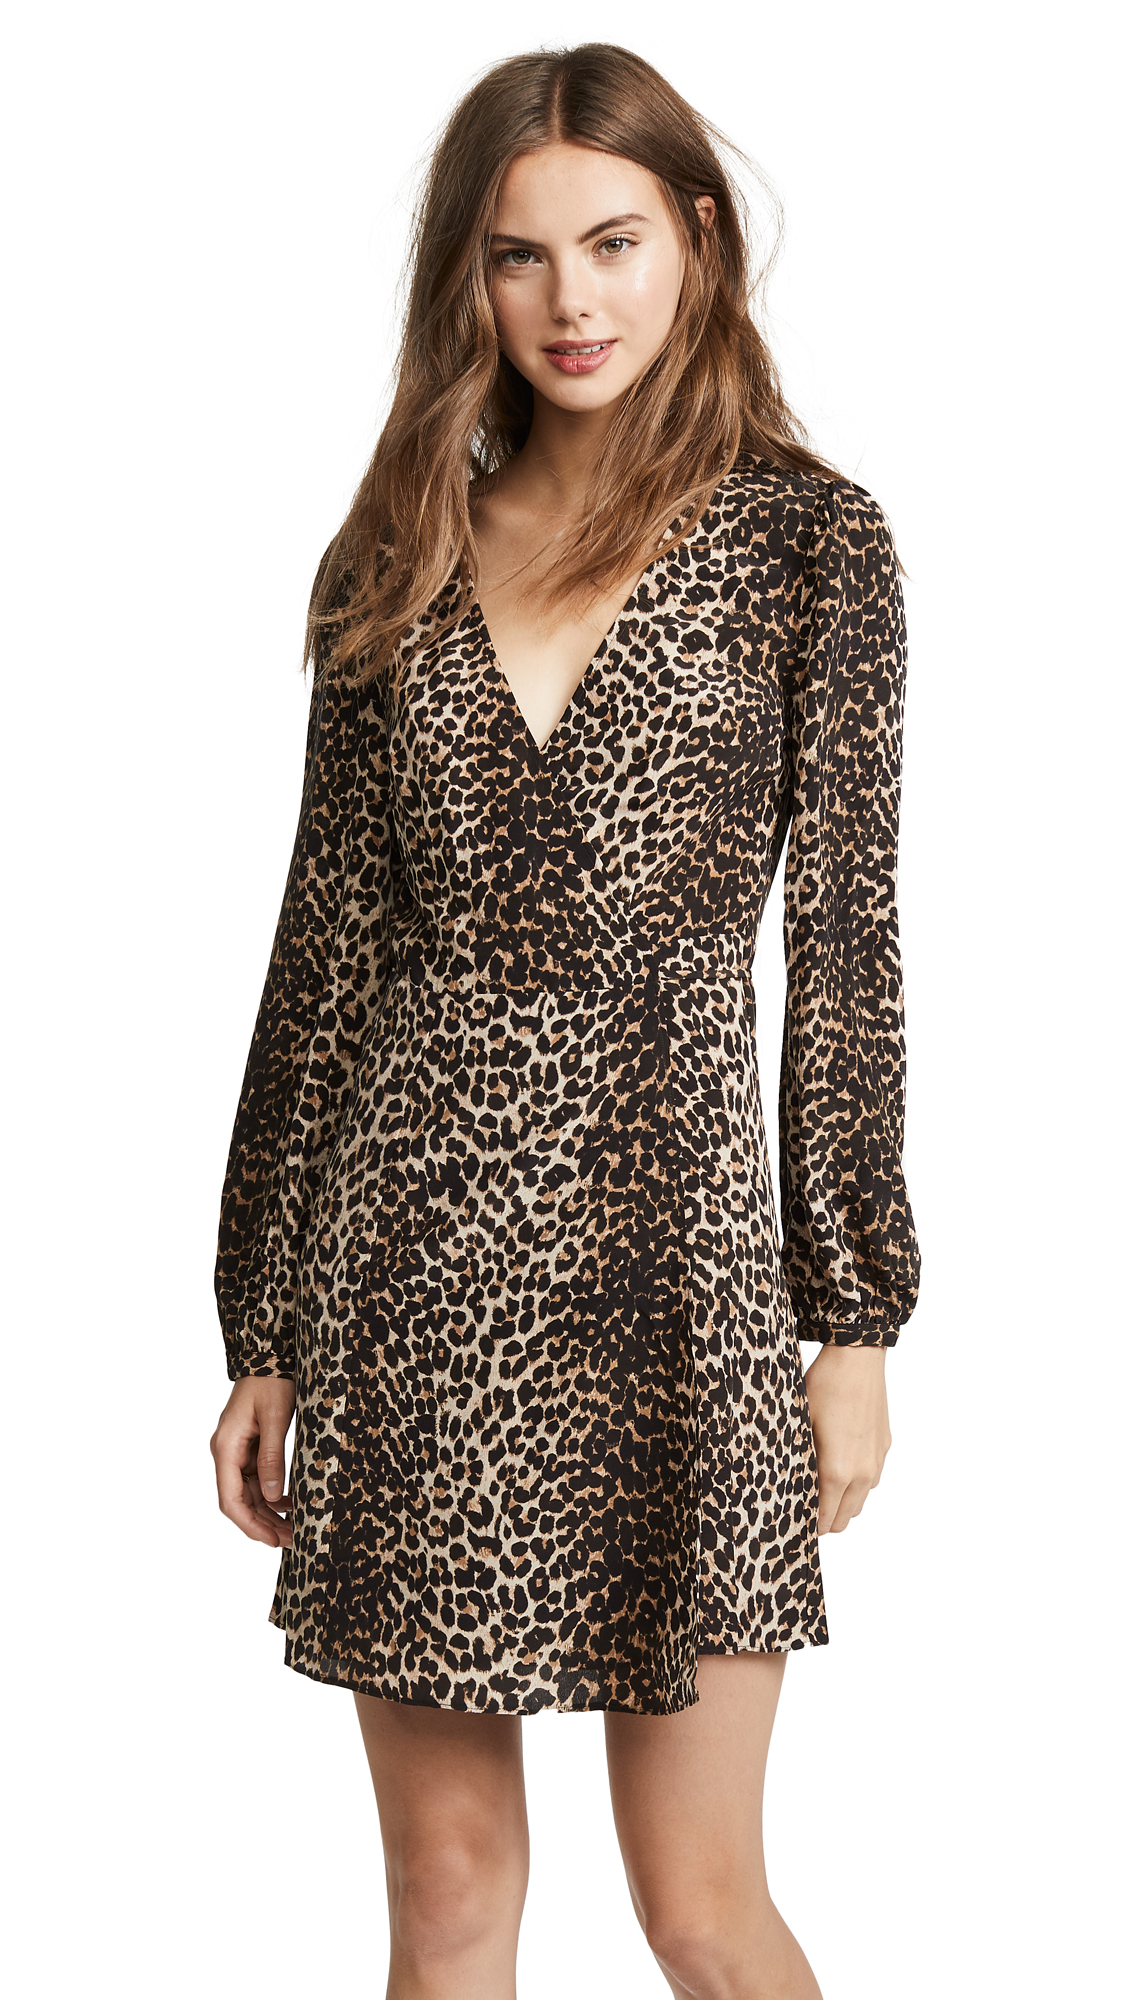 PAIGE Garance Dress In Natural Leopard